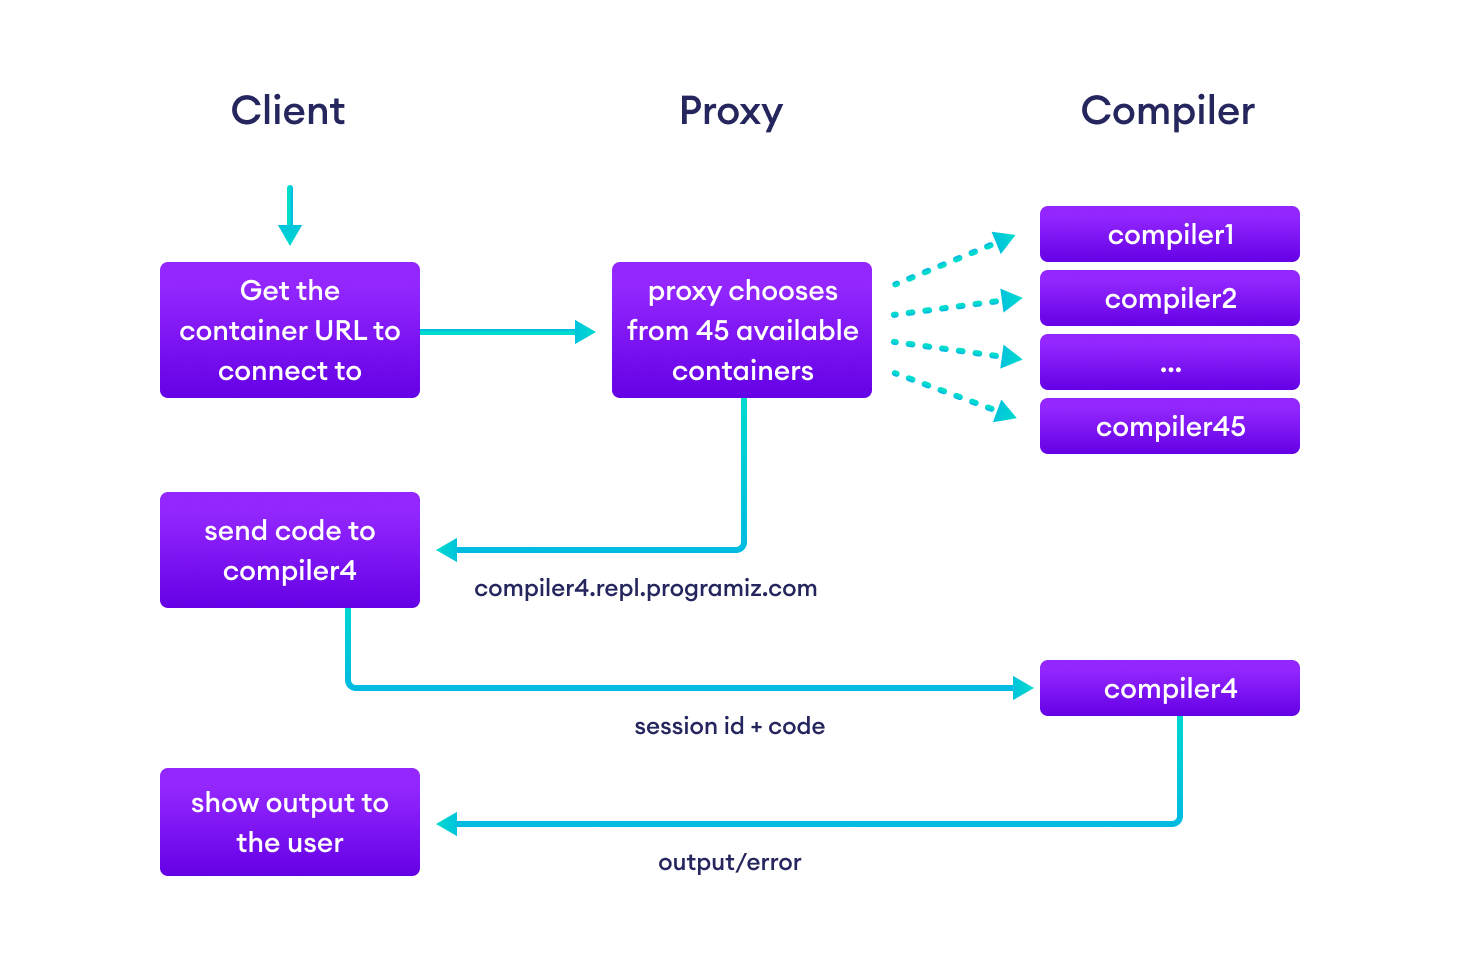 Flowchart showing how the proxy server co-ordinates communication between the frontend and one of 45 available containers